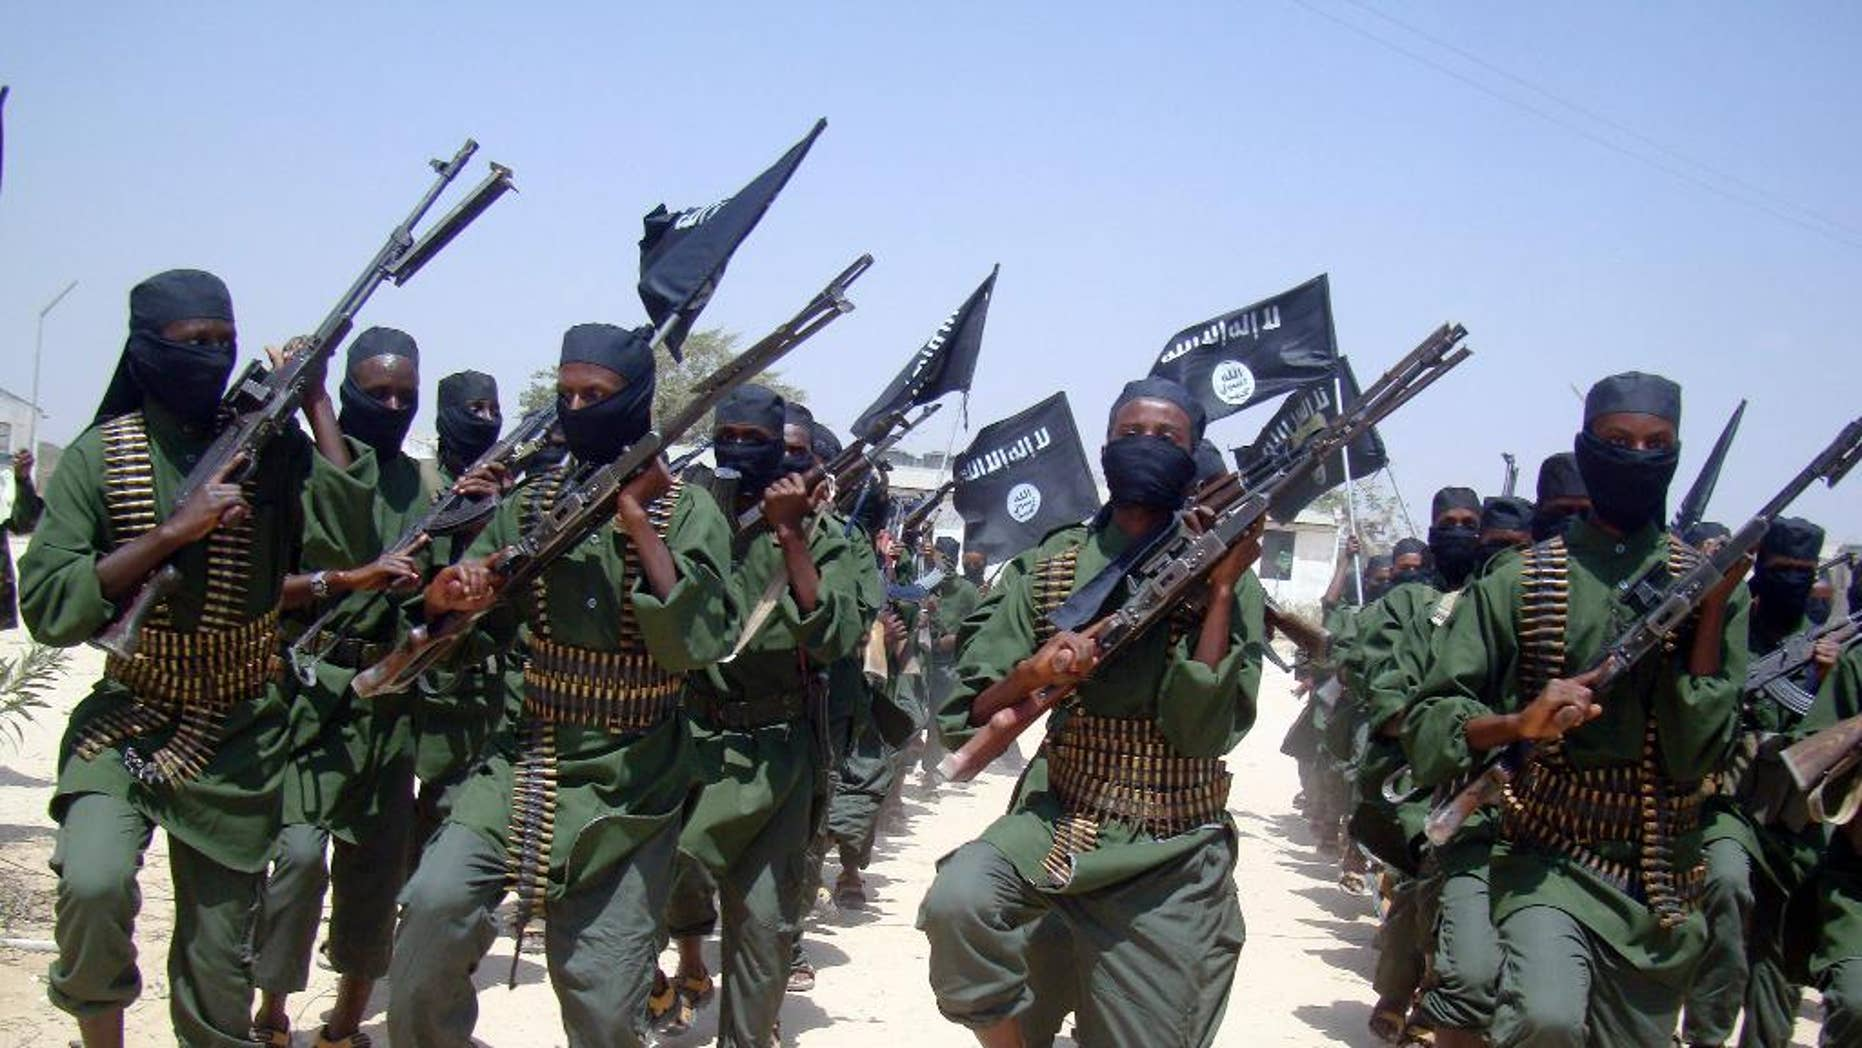 FILE - In this Thursday, Feb. 17, 2011 file photo, al-Shabab fighters march with their weapons during military exercises on the outskirts of Mogadishu, Somalia.  A U.S. drone strike in Somalia has targeted a key leader of the al-Shabab militant group who was involved in two attacks in Mogadishu more than a year ago that killed more than 30 people, at least three Americans among them, the Pentagon said Friday, April 1, 2016. Several U.S. officials said he and two others were killed. Hassan Ali Dhoore was targeted in the airstrike Thursday, but the U.S. military was still assessing the results, Pentagon spokesman Peter Cook said in a statement. (AP Photo/Mohamed Sheikh Nor, File)